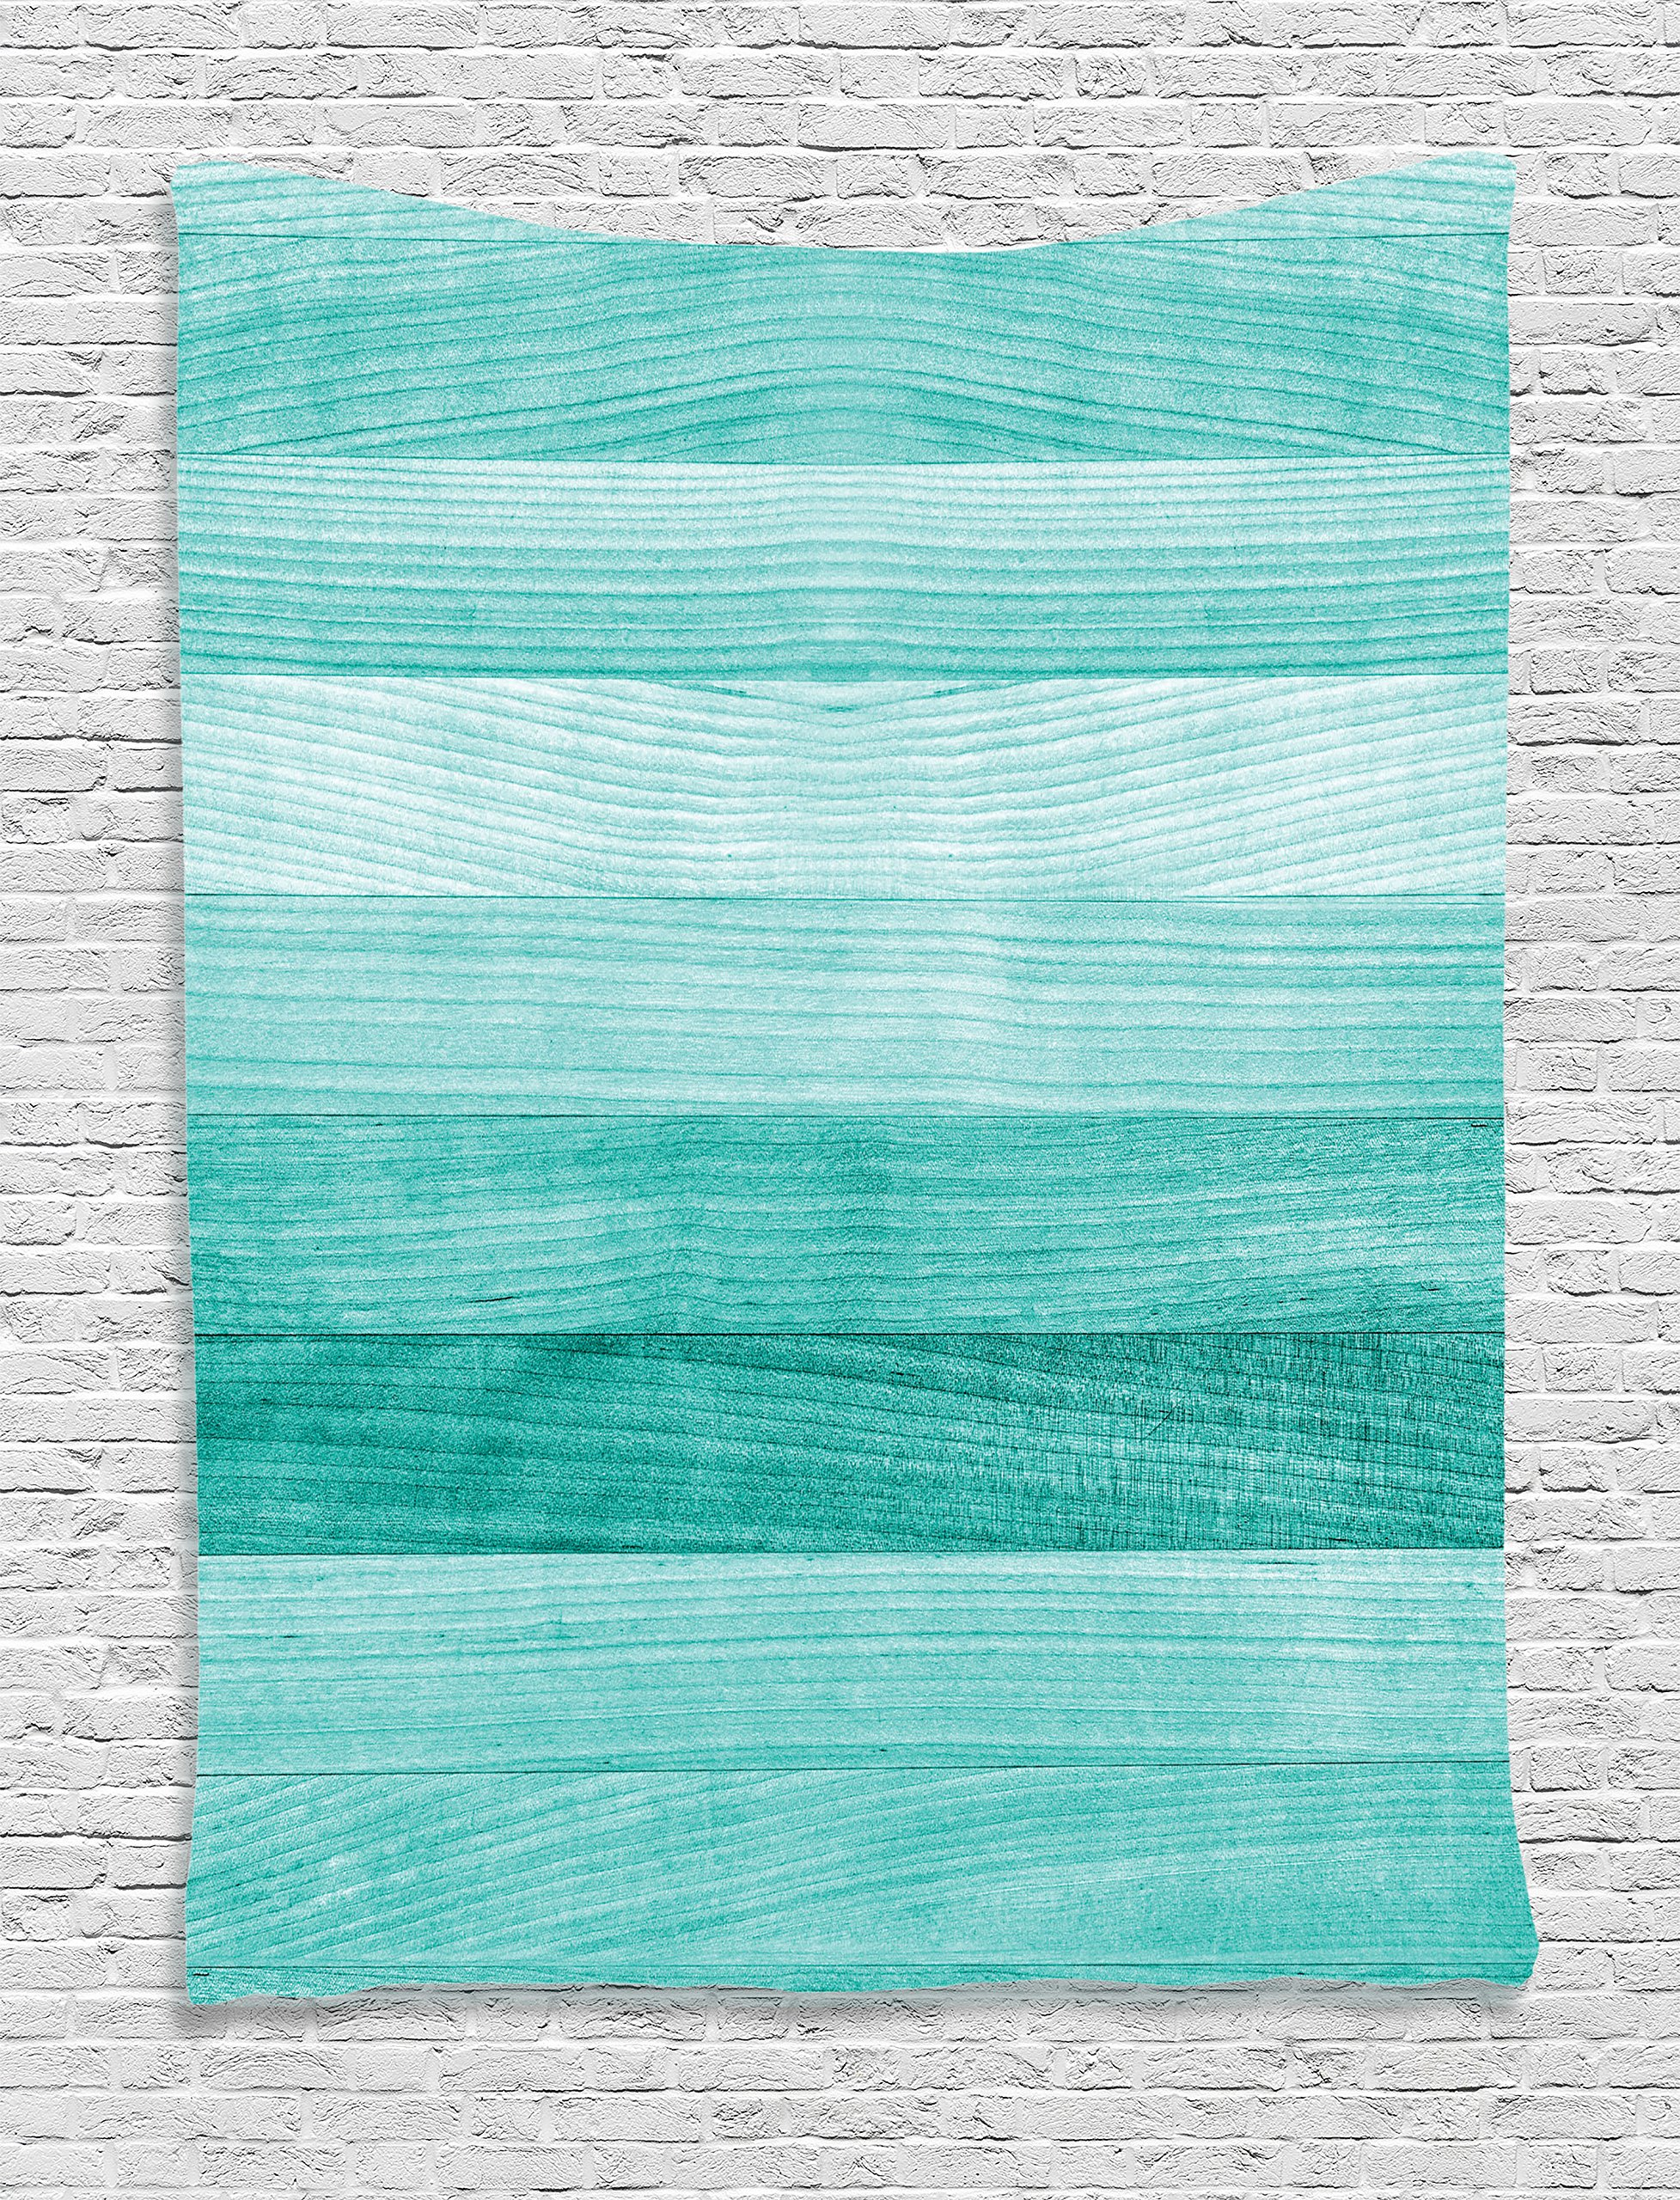 Ambesonne Teal Decor Tapestry, Painted Wood Texture Penal Horizontal Lines Birthdays Easter Holiday Print Backdrop, Bedroom Living Room Dorm Decor, 40 W x 60 L Inches, Turquoise